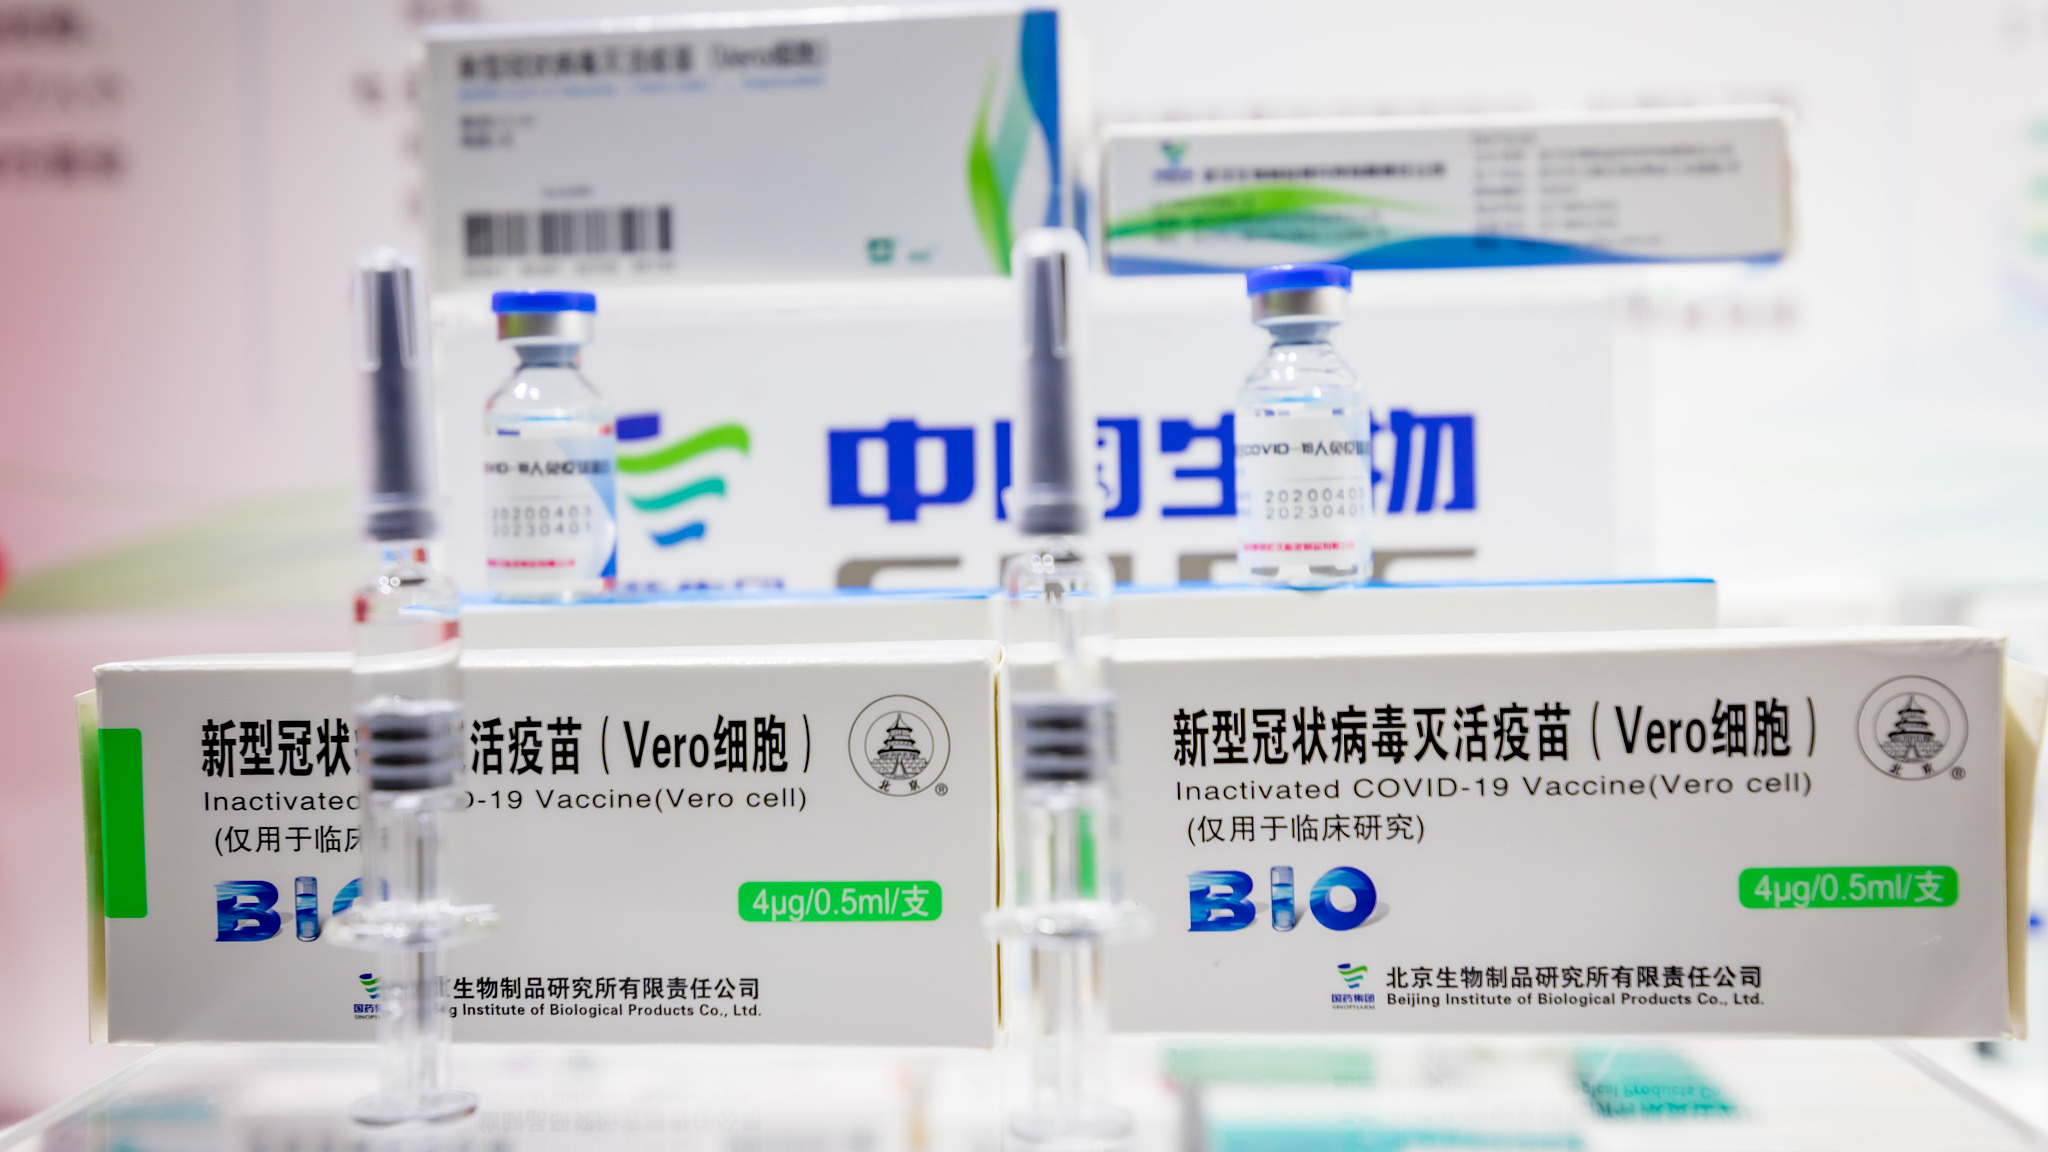 Hungary reaches deal to buy China's Sinopharm vaccine, PM aide says - CGTN